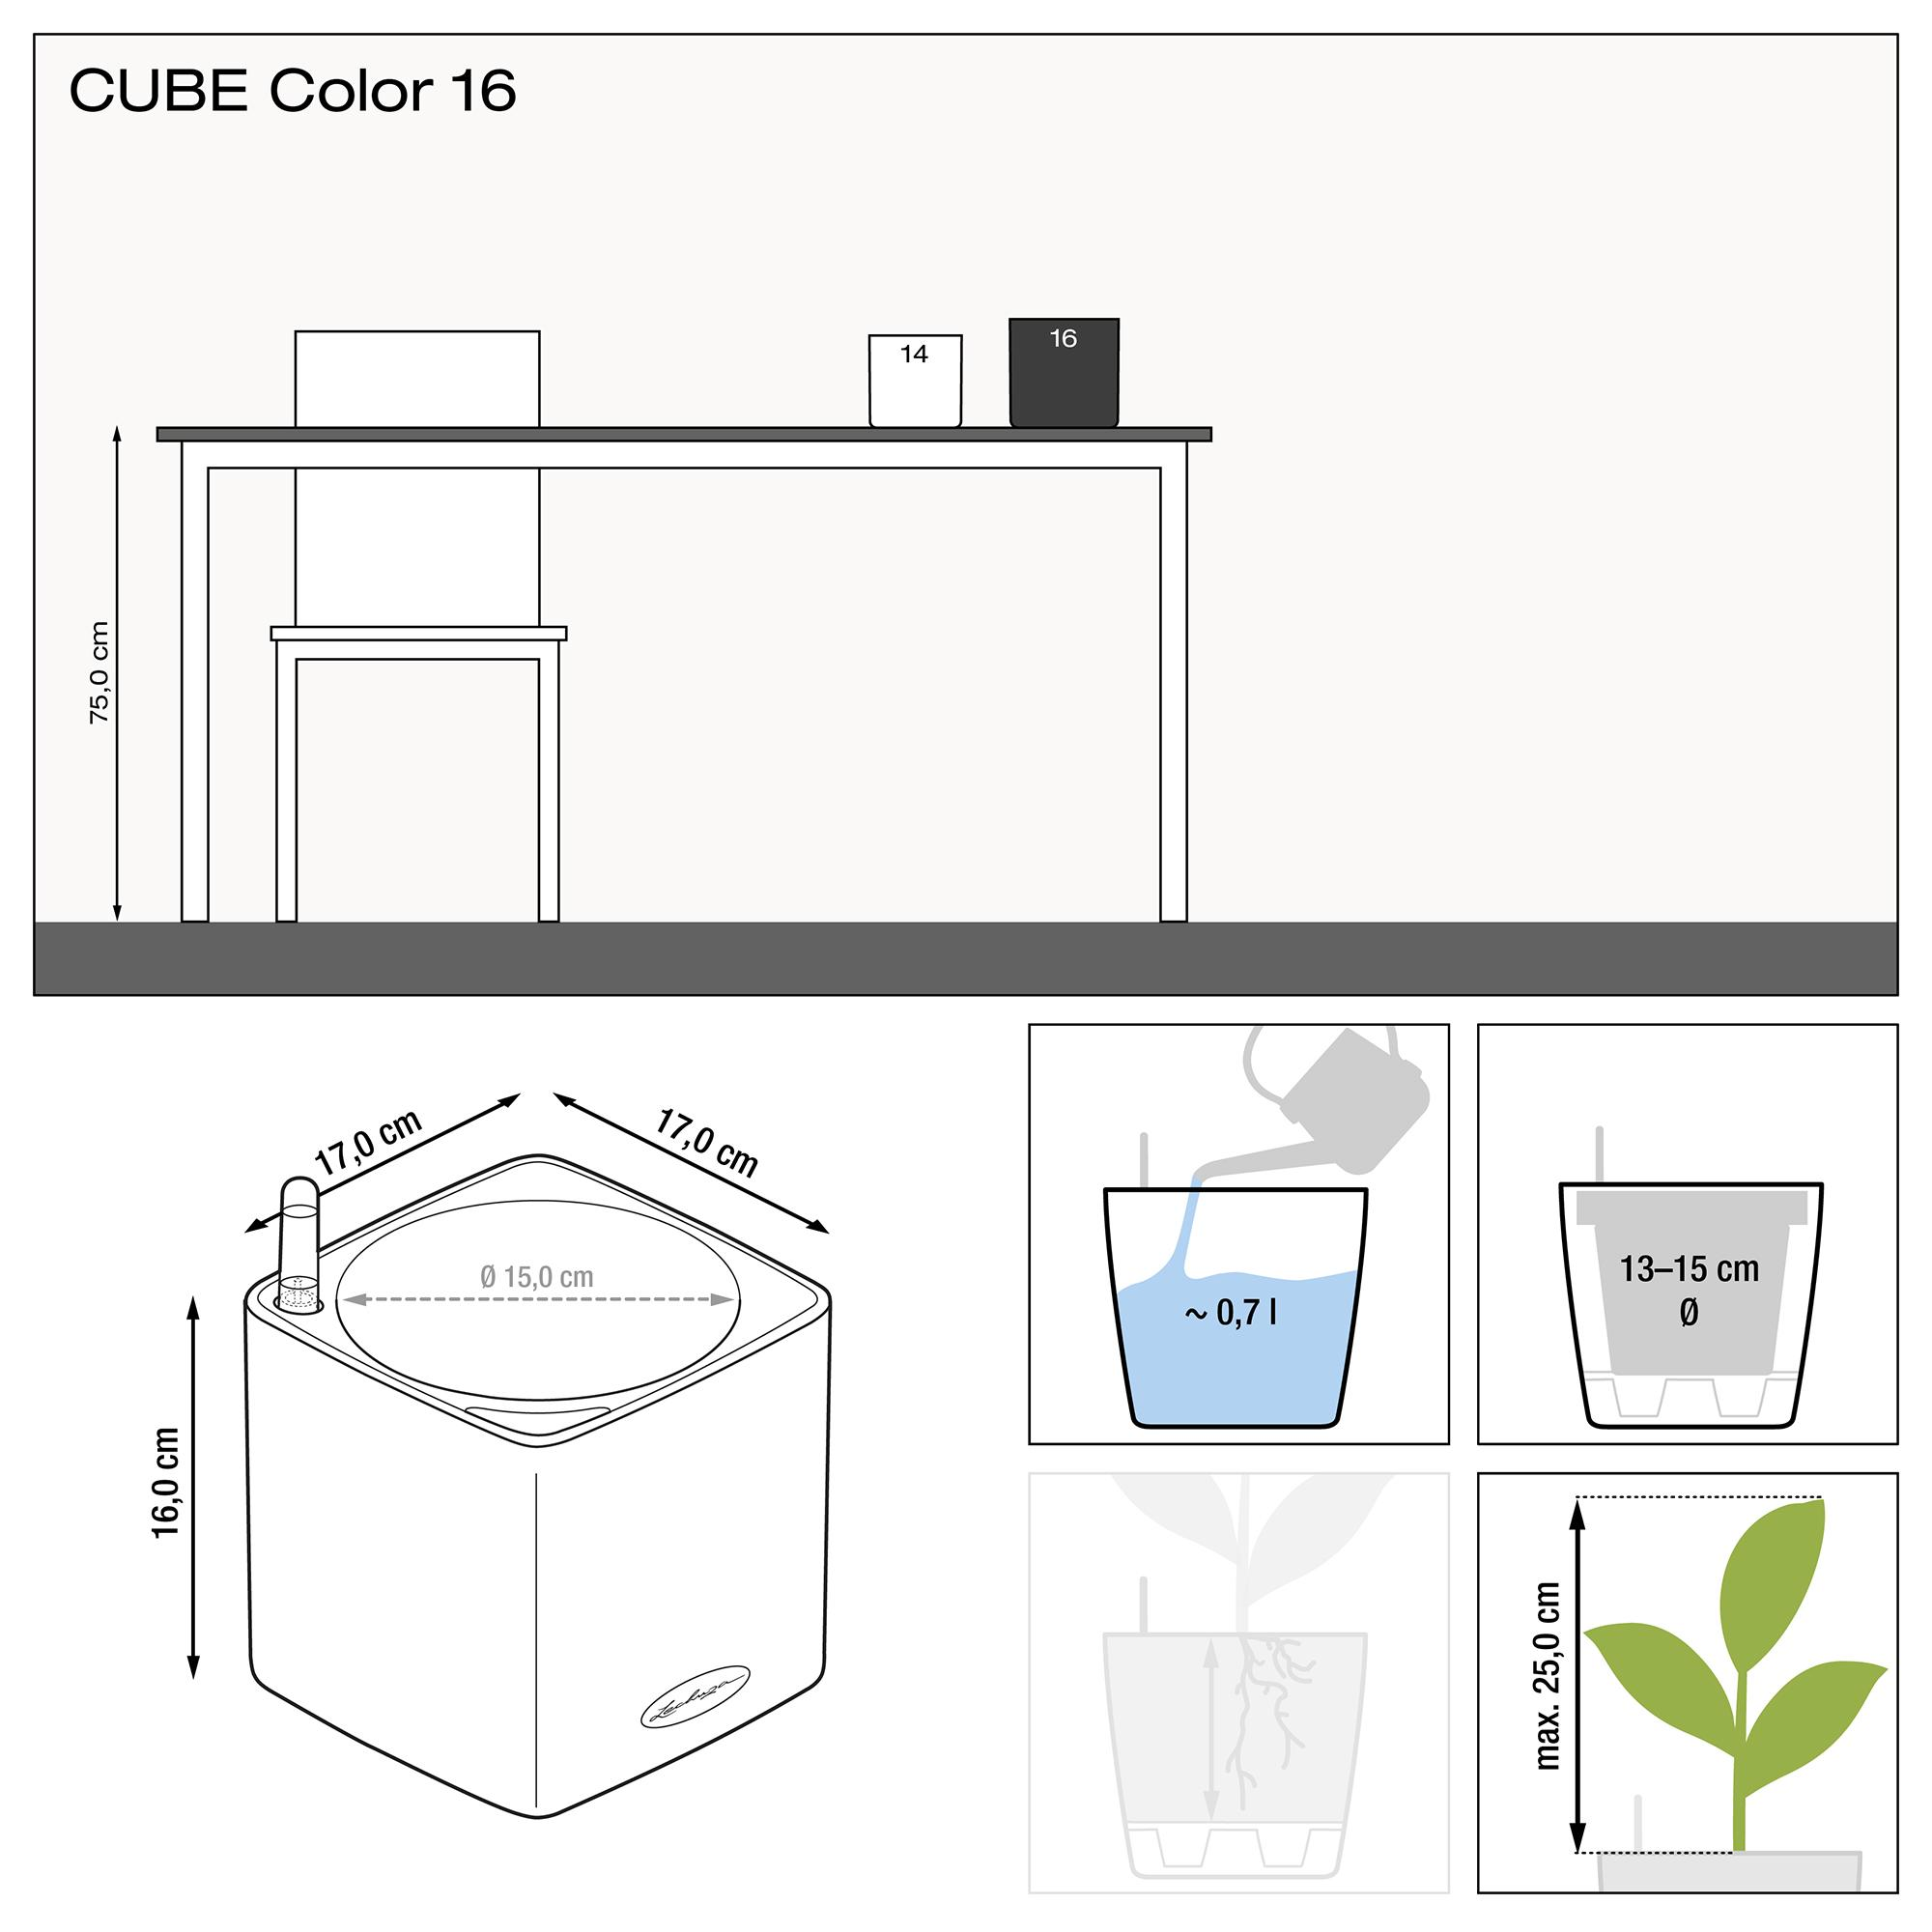 CUBE Color 16 lime green - Image 2